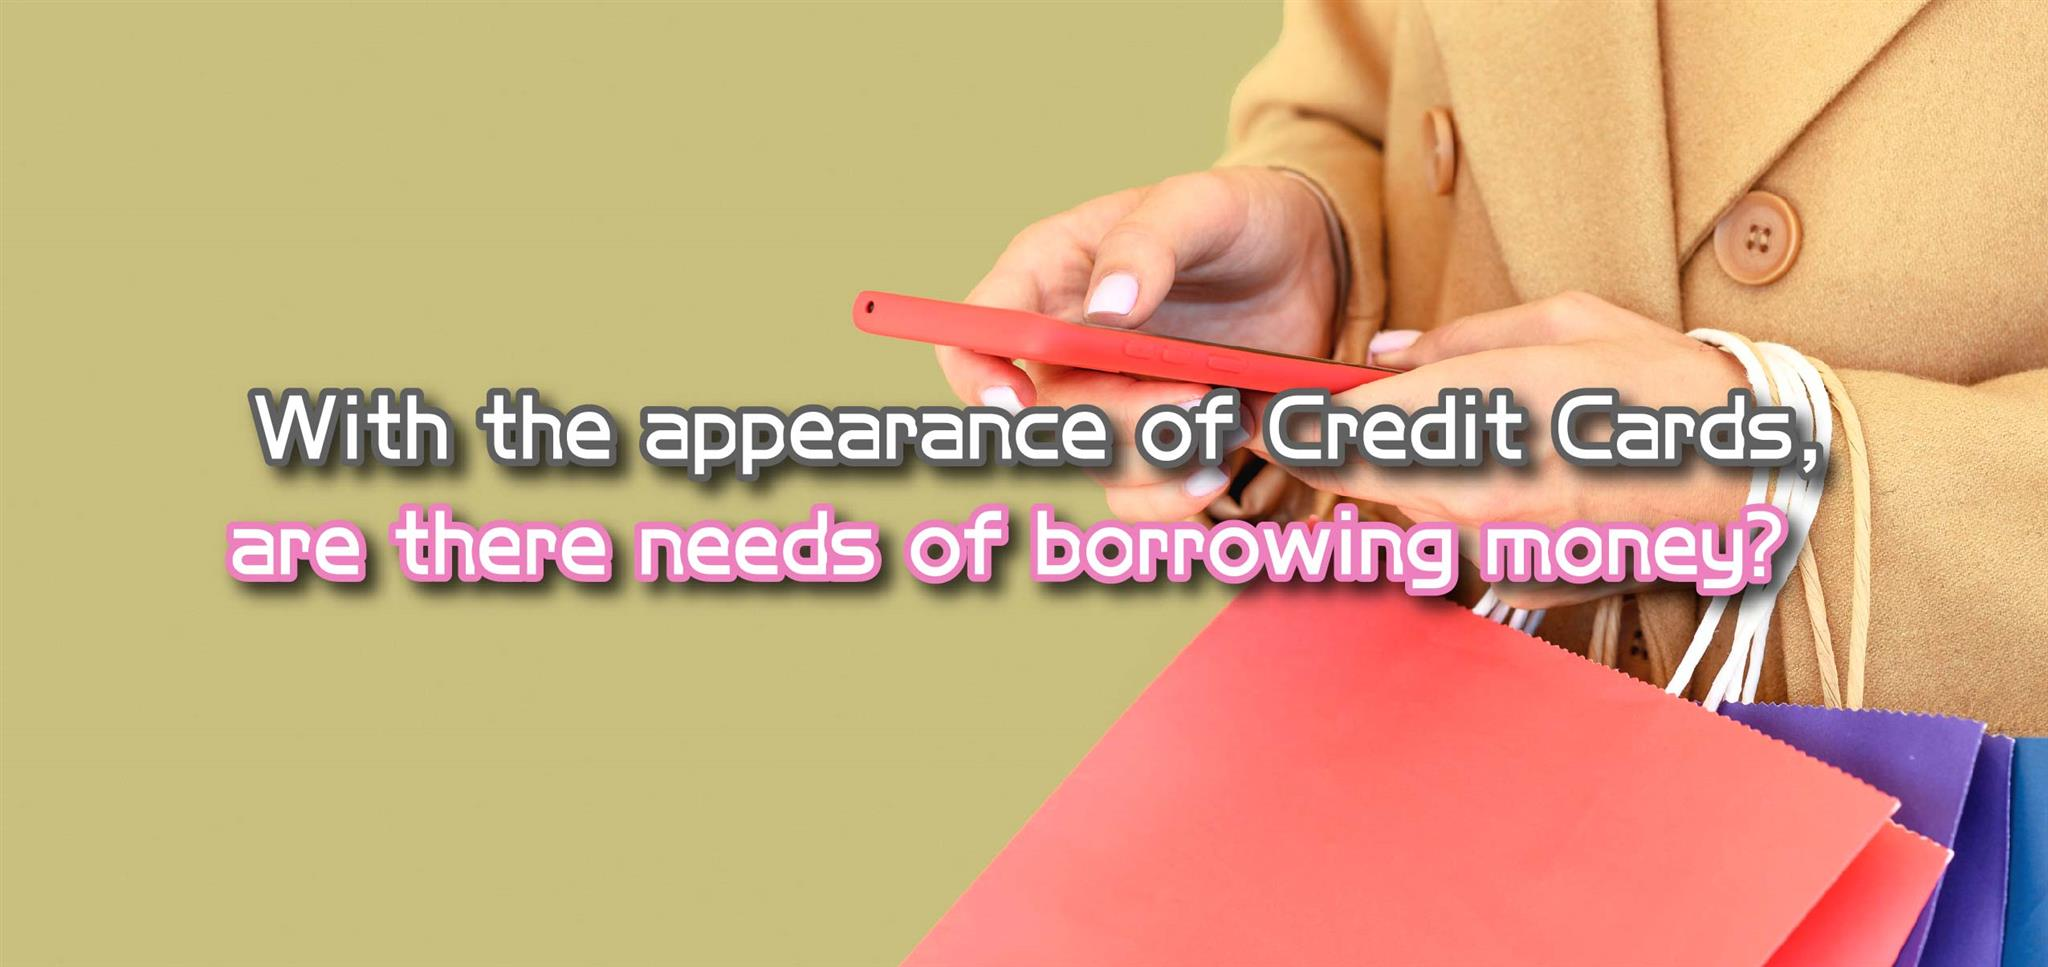 With the appearance of Credit Cards, are there needs of borrowing money?